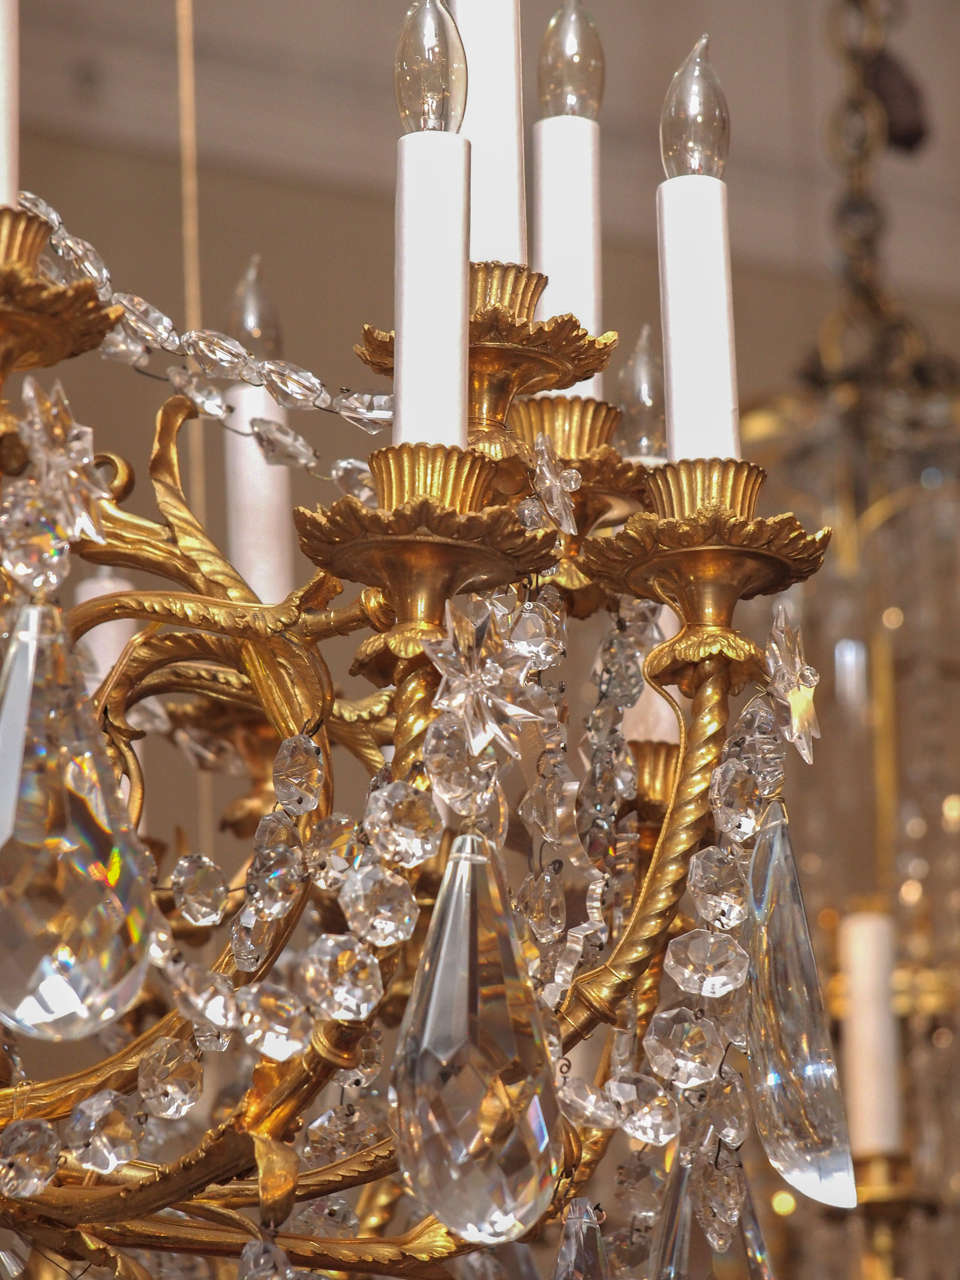 Antique French Baccarat Crystal and Bronze D'ore 24 Light Chandelier circa 1890 For Sale 2